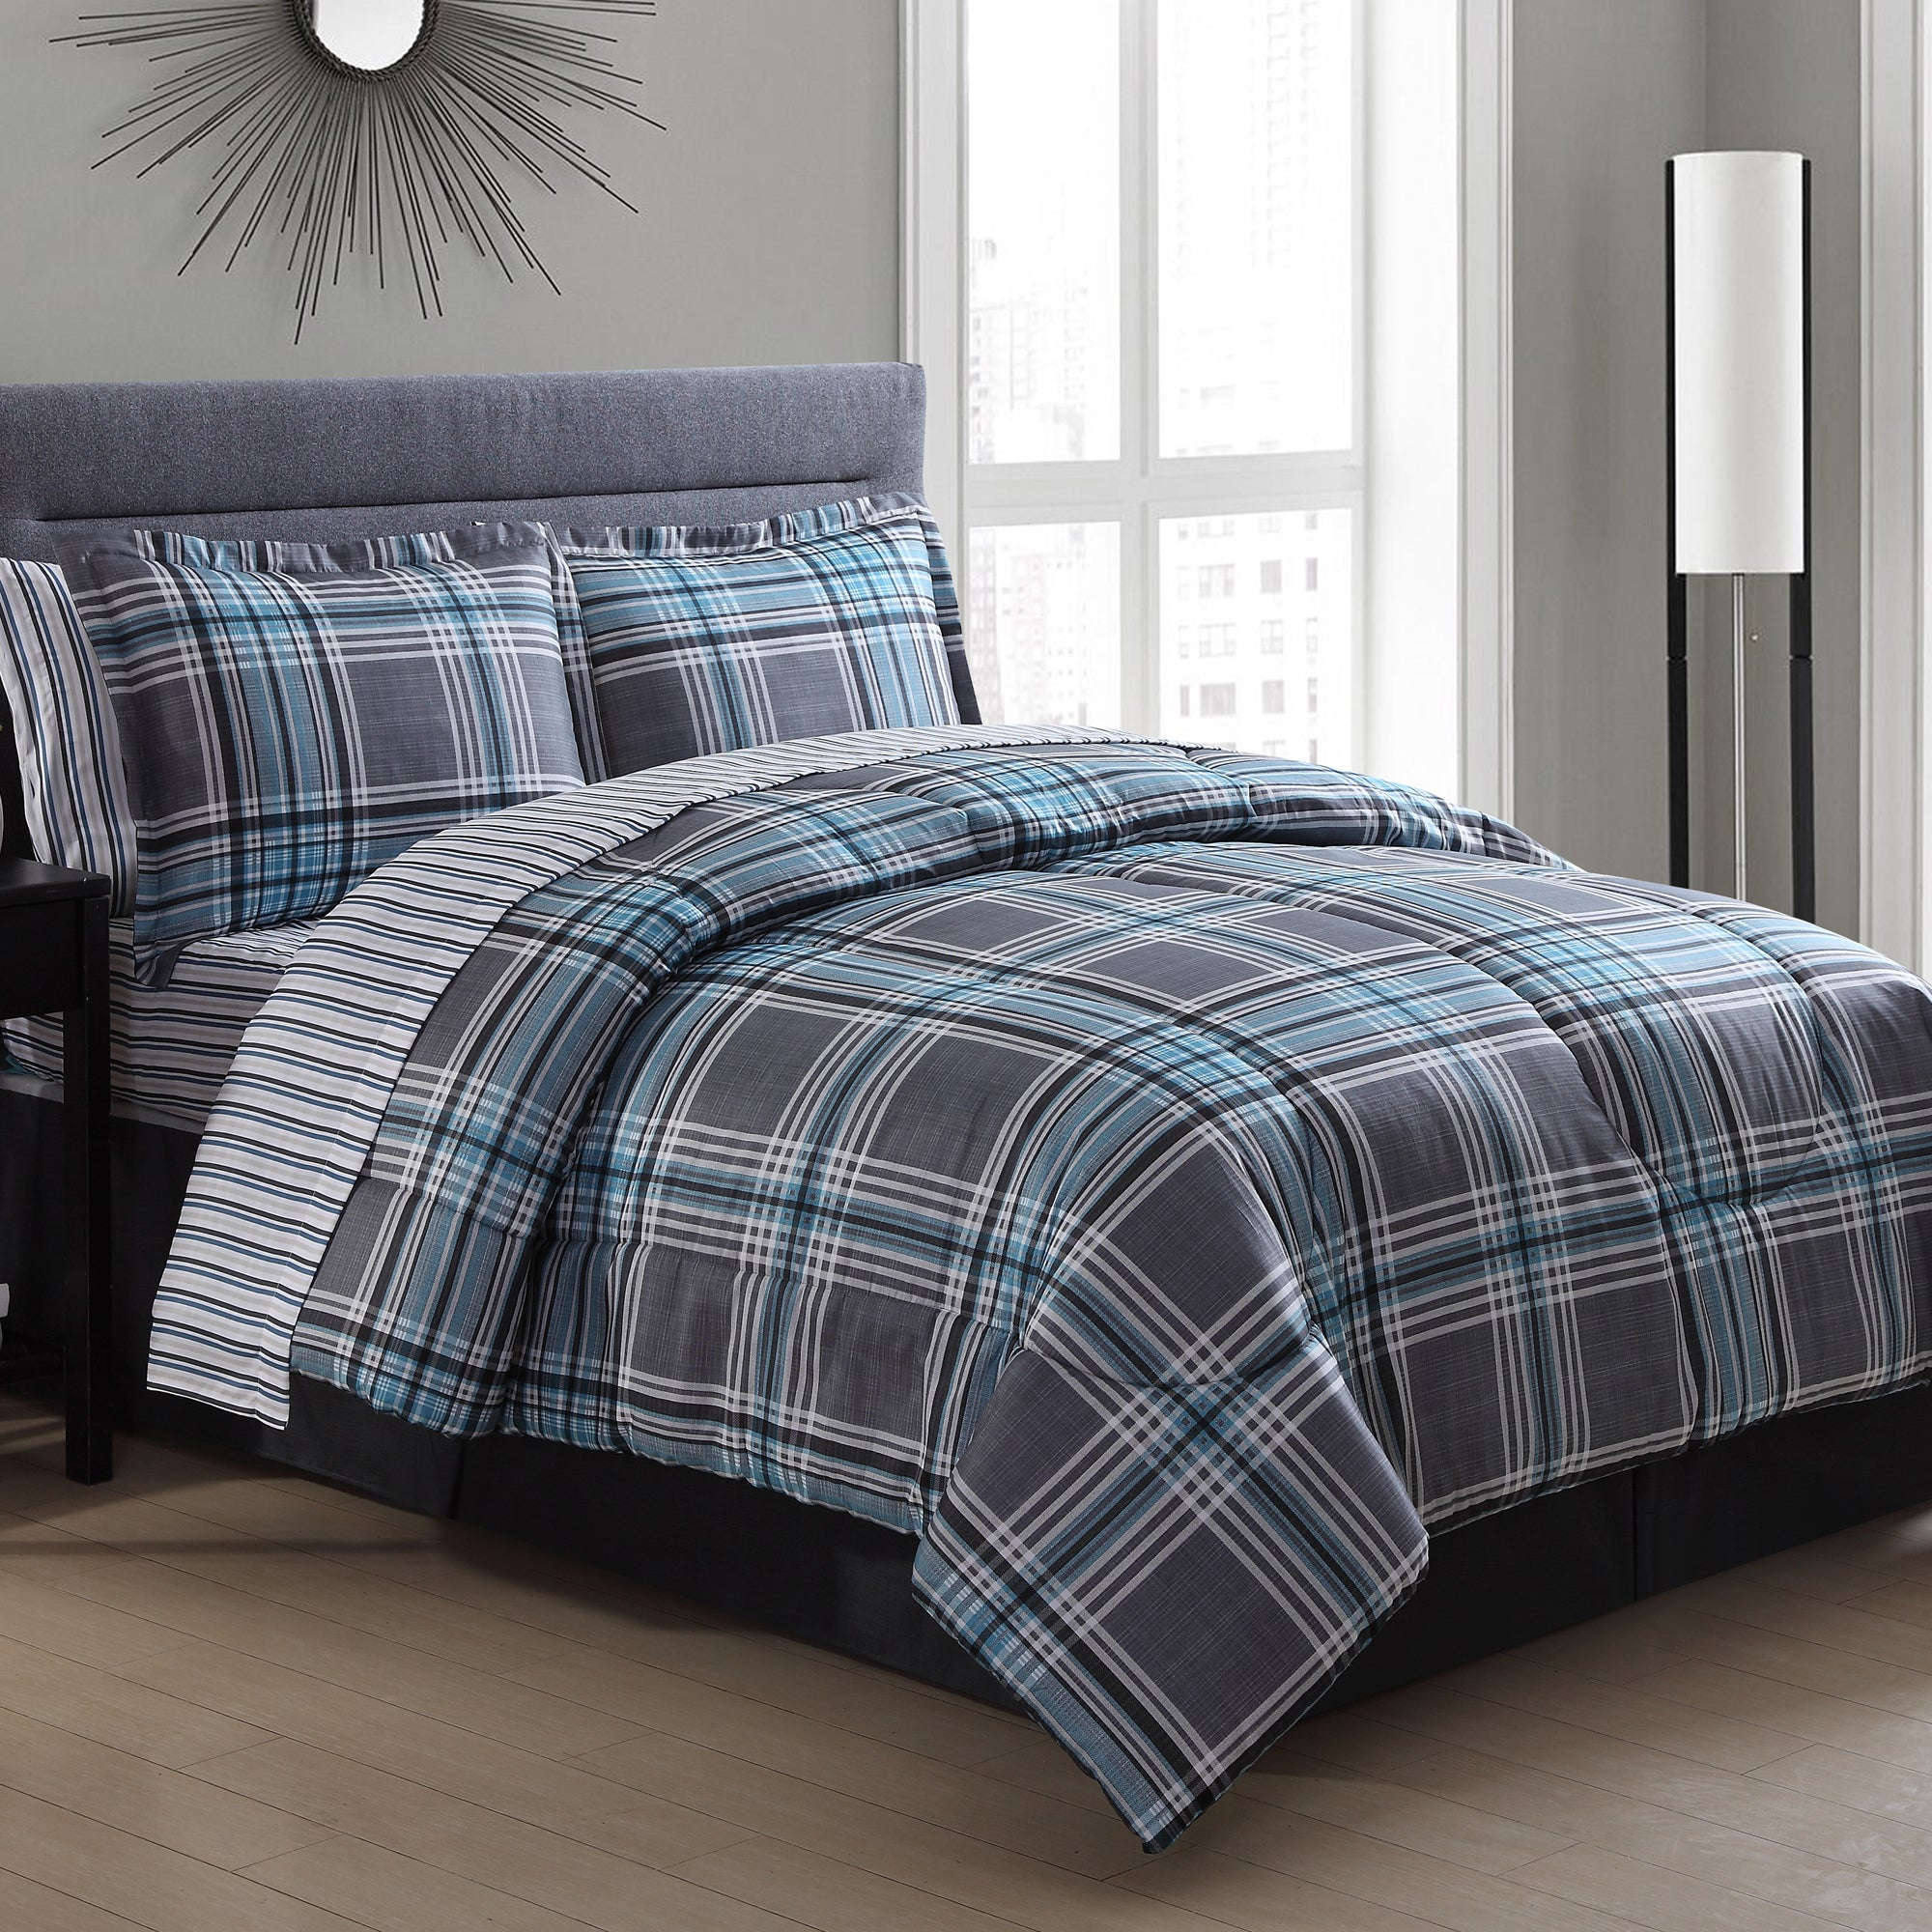 Shop Chelsea Blue Plaid Bed In A Bag Comforter Set Free Shipping